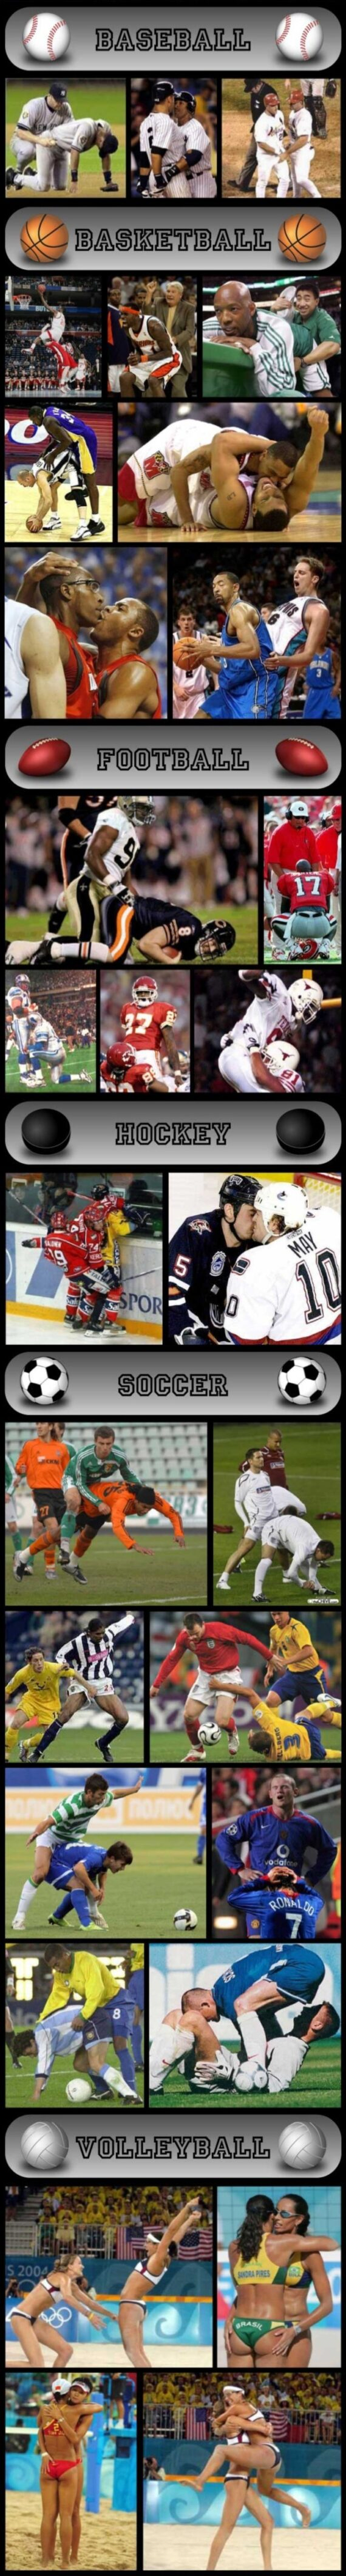 Uncensored Sport Infographic for the Love of the Game